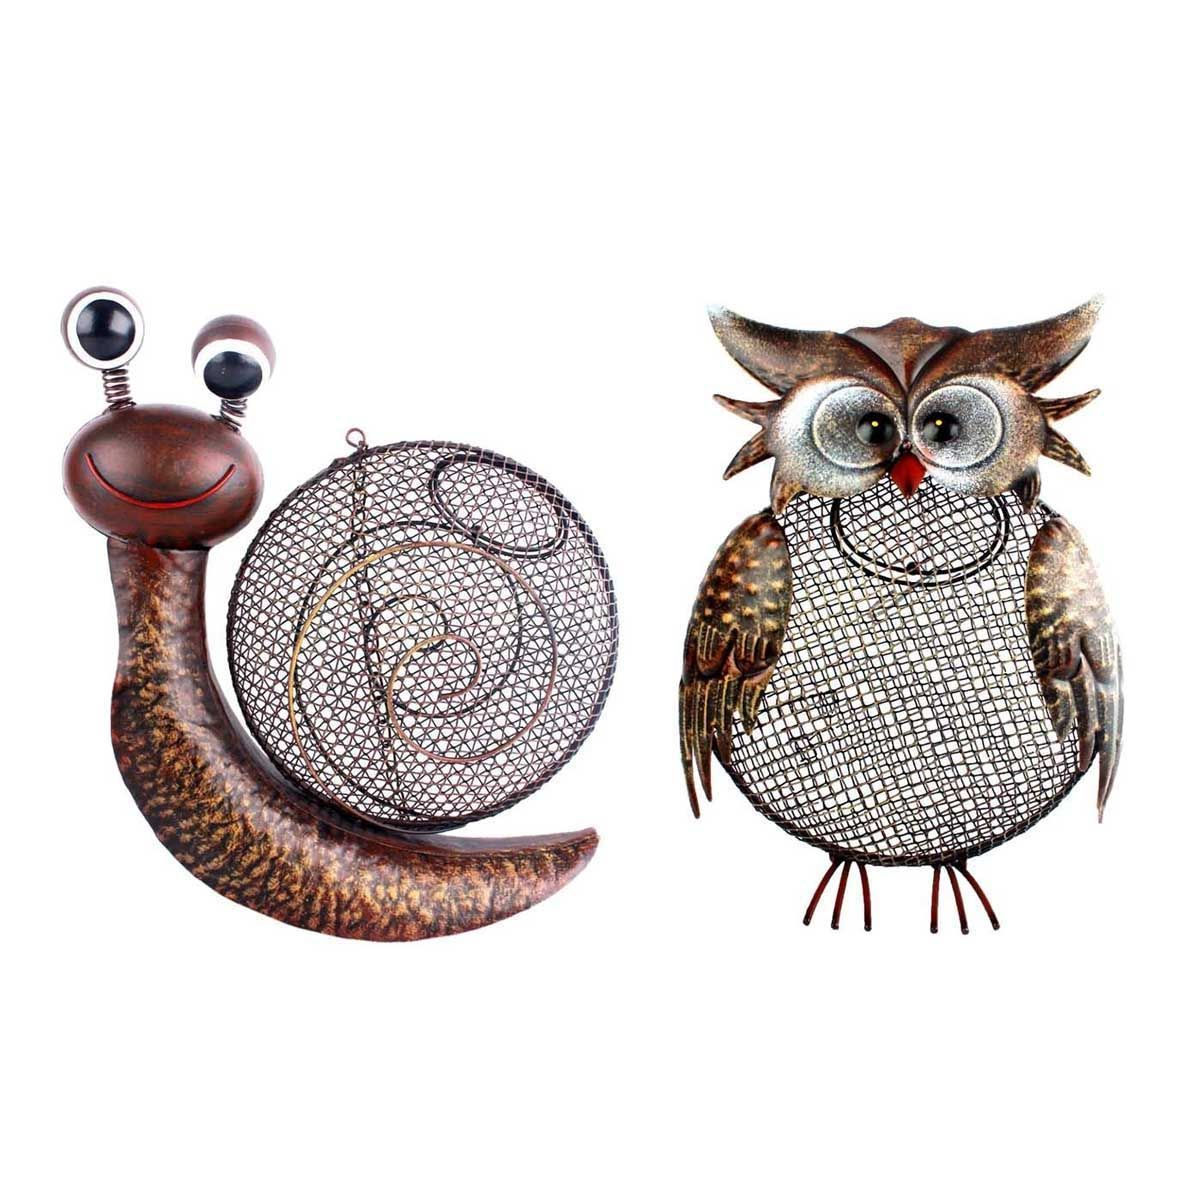 Metal Mesh Owl Or Snail Hanging Wild Bird Birds Ball